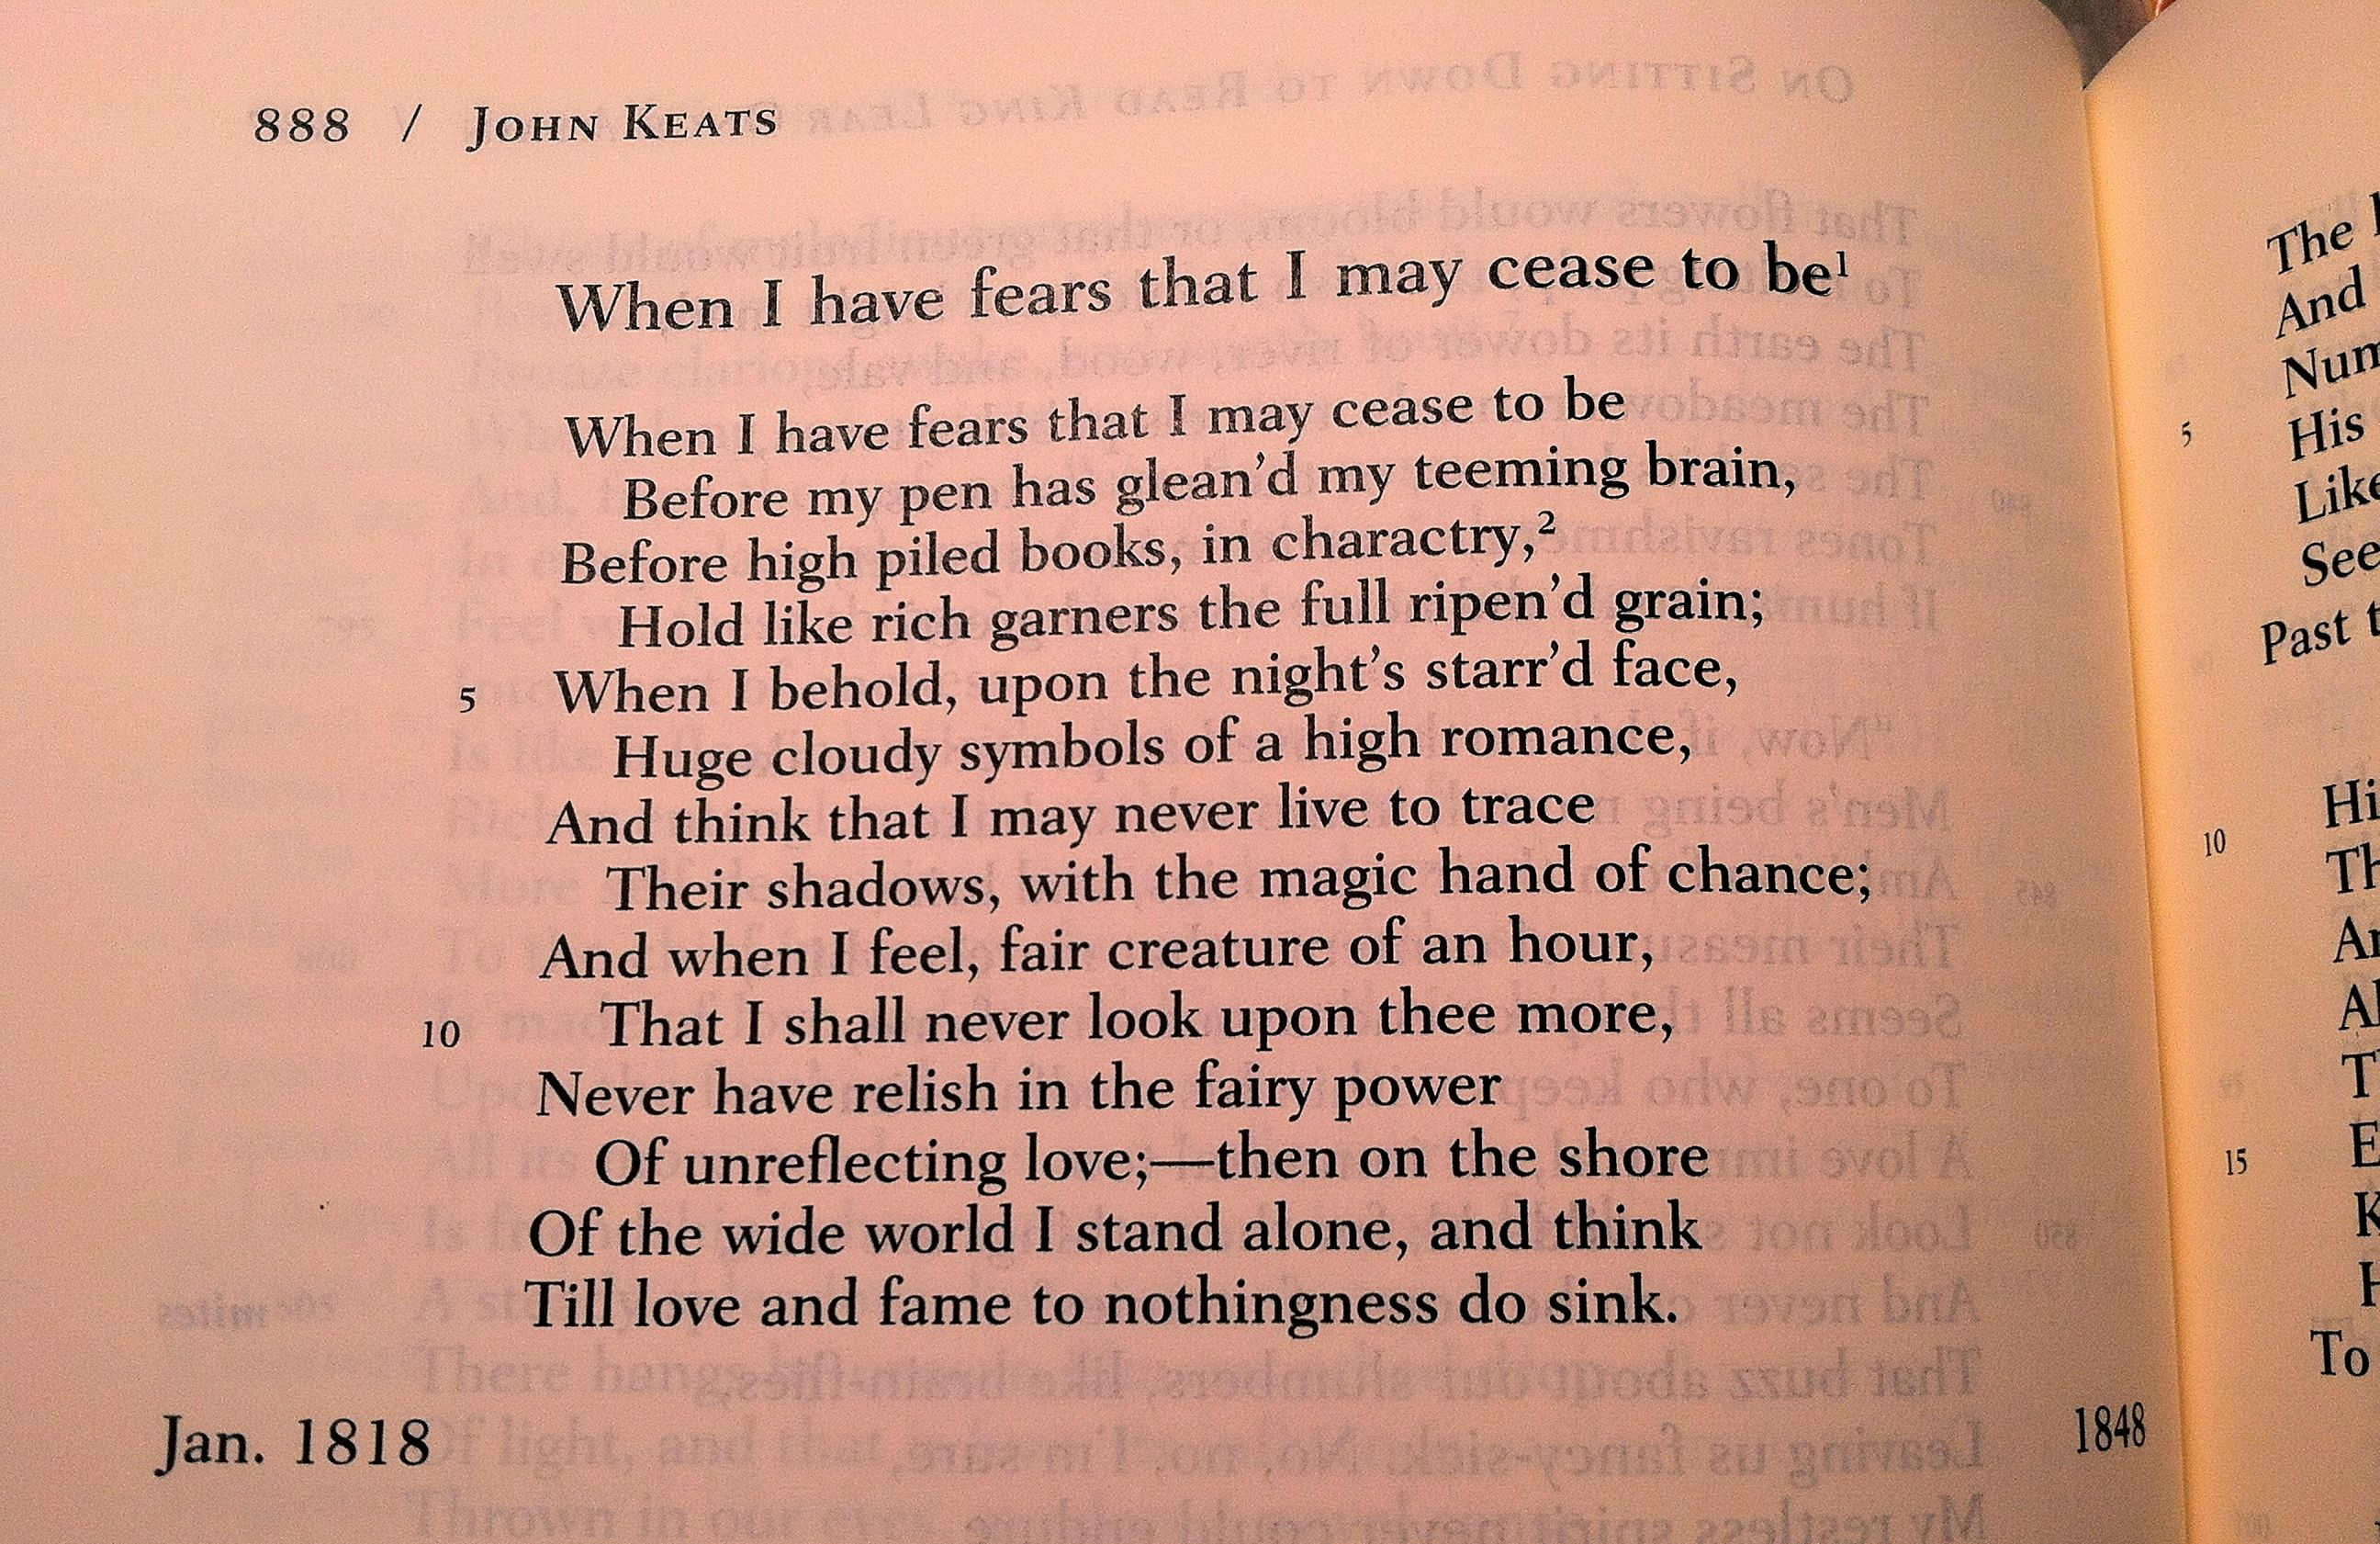 a literary analysis of when i have fears that i may cease to be by john keats In the poem ode on a grecian urn, keats describes elaborate images on a vase pair when i have fears that i may cease to be with ode on a grecian urn and ask students to compare the themes and forms of these two poems by the same author.